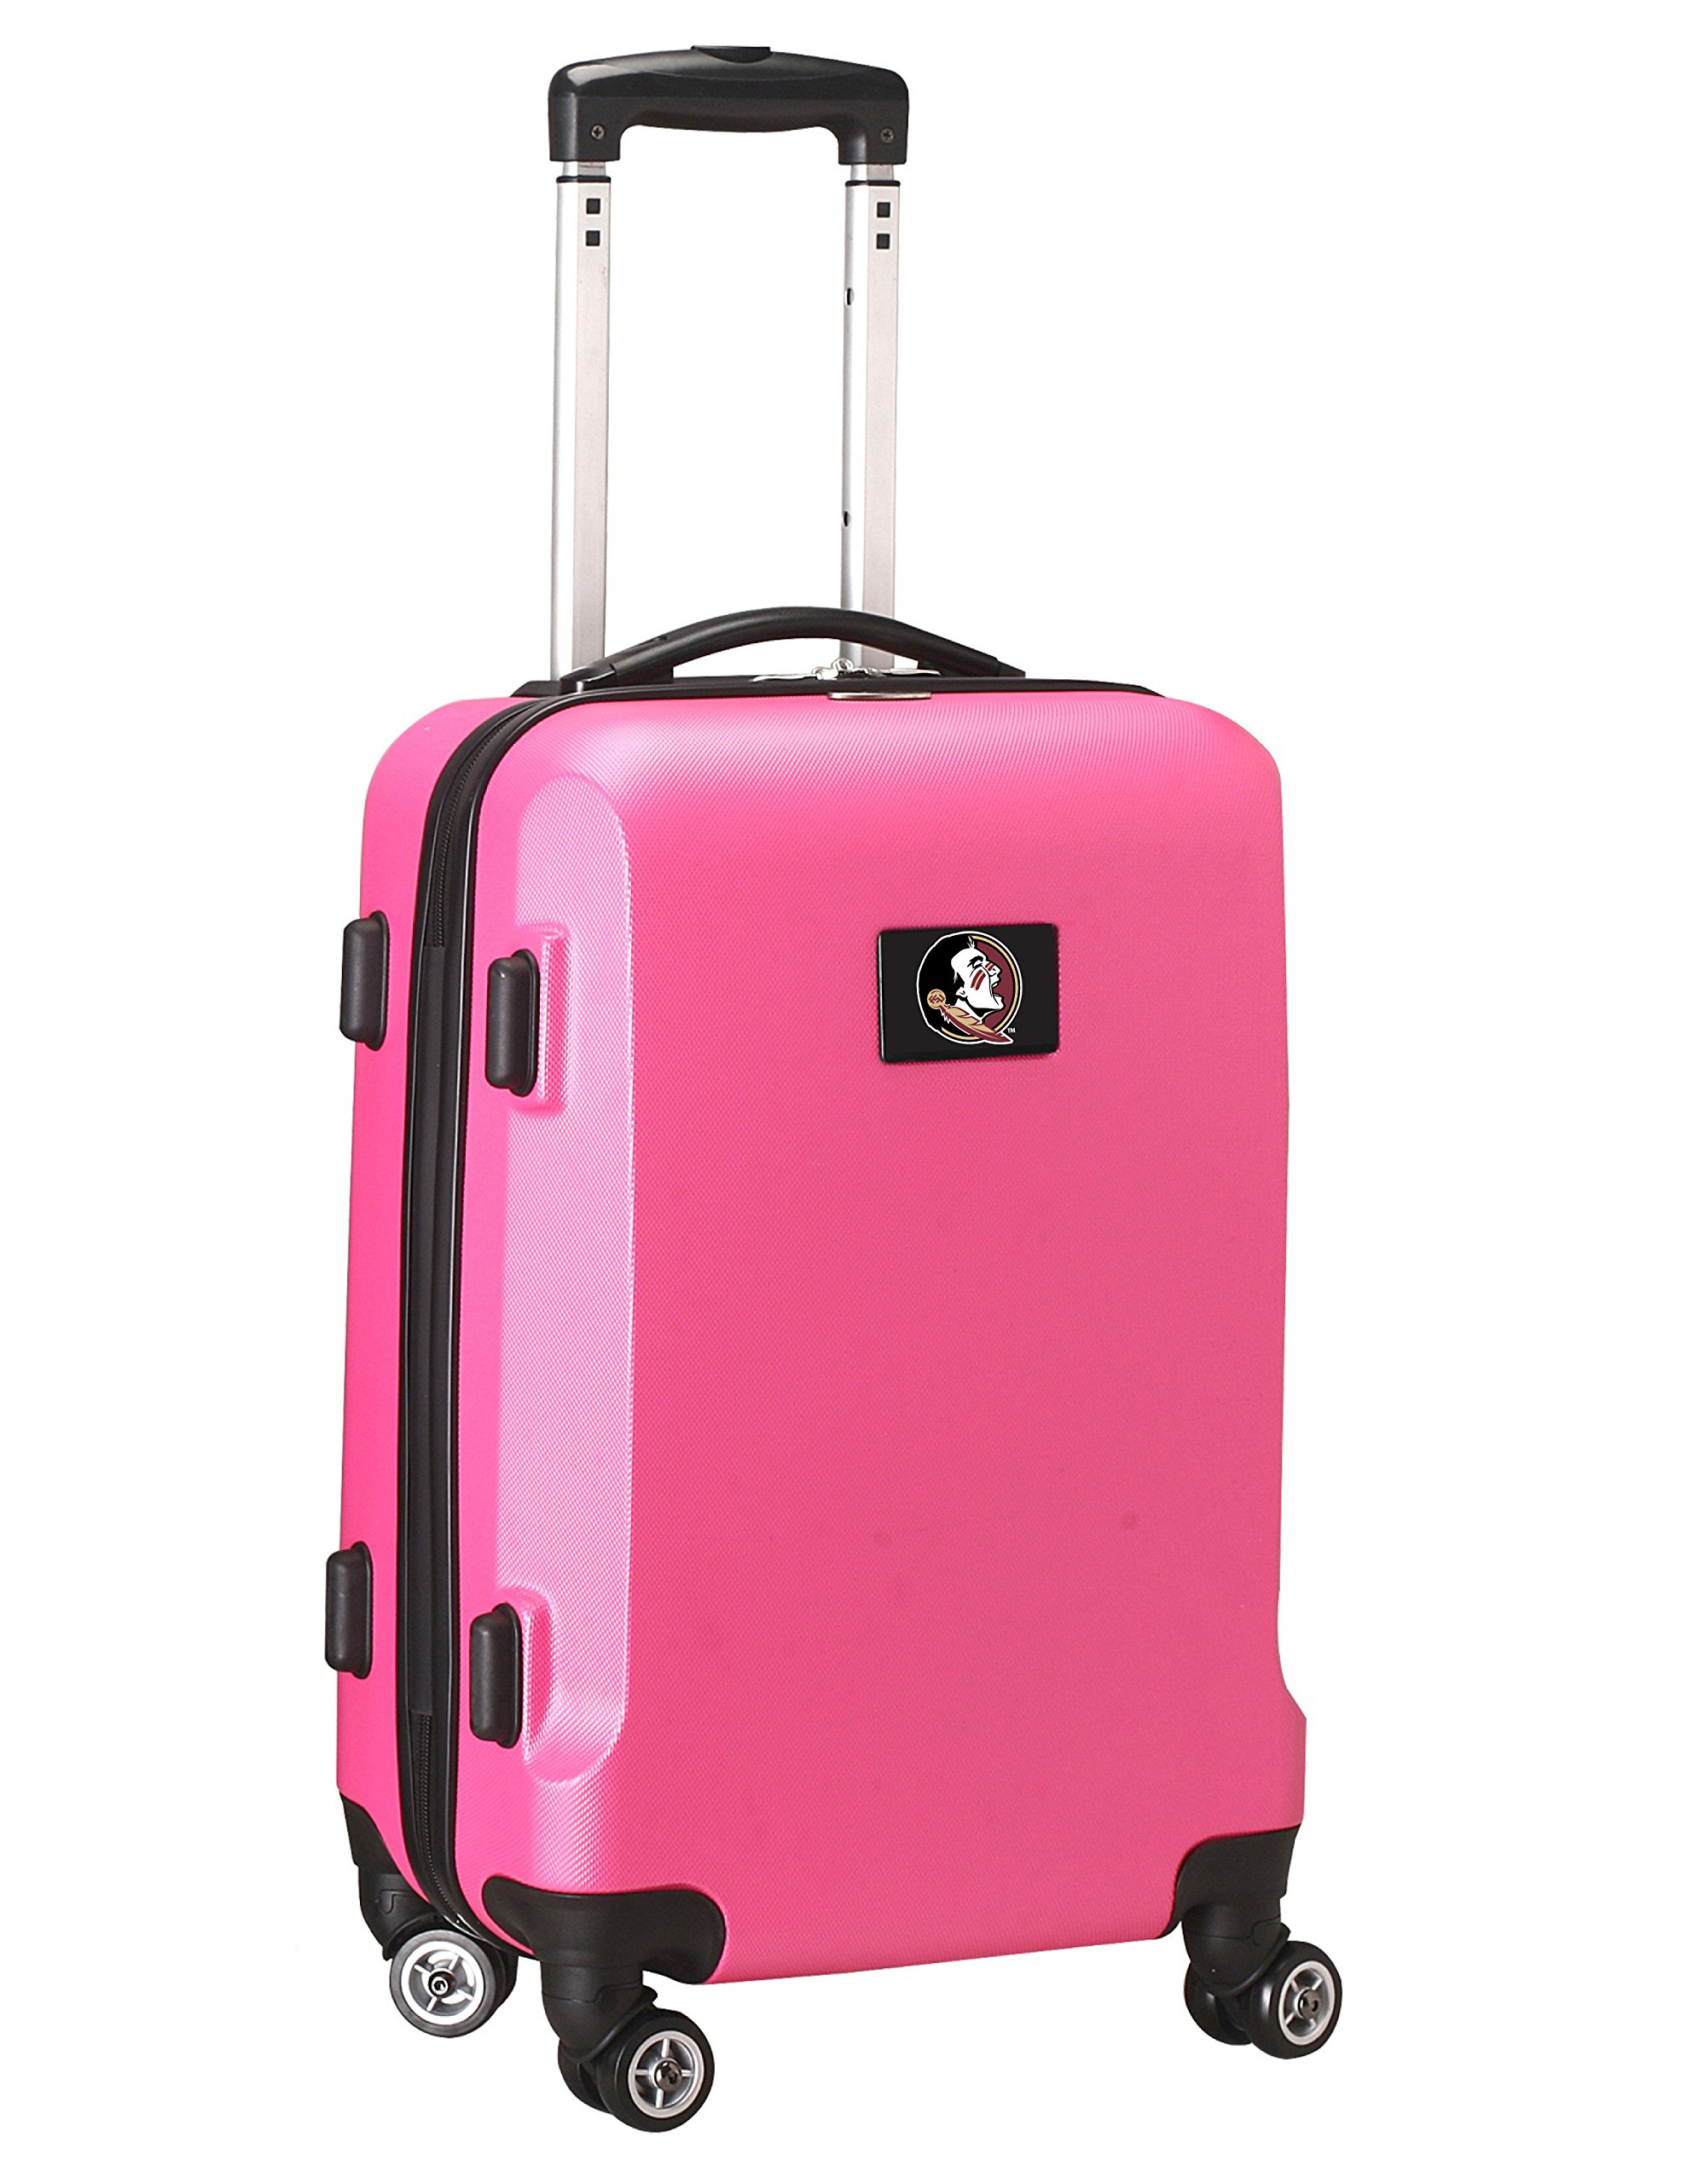 Denco NCAA Florida State Seminoles Carry-On Hardcase Luggage Spinner, Pink